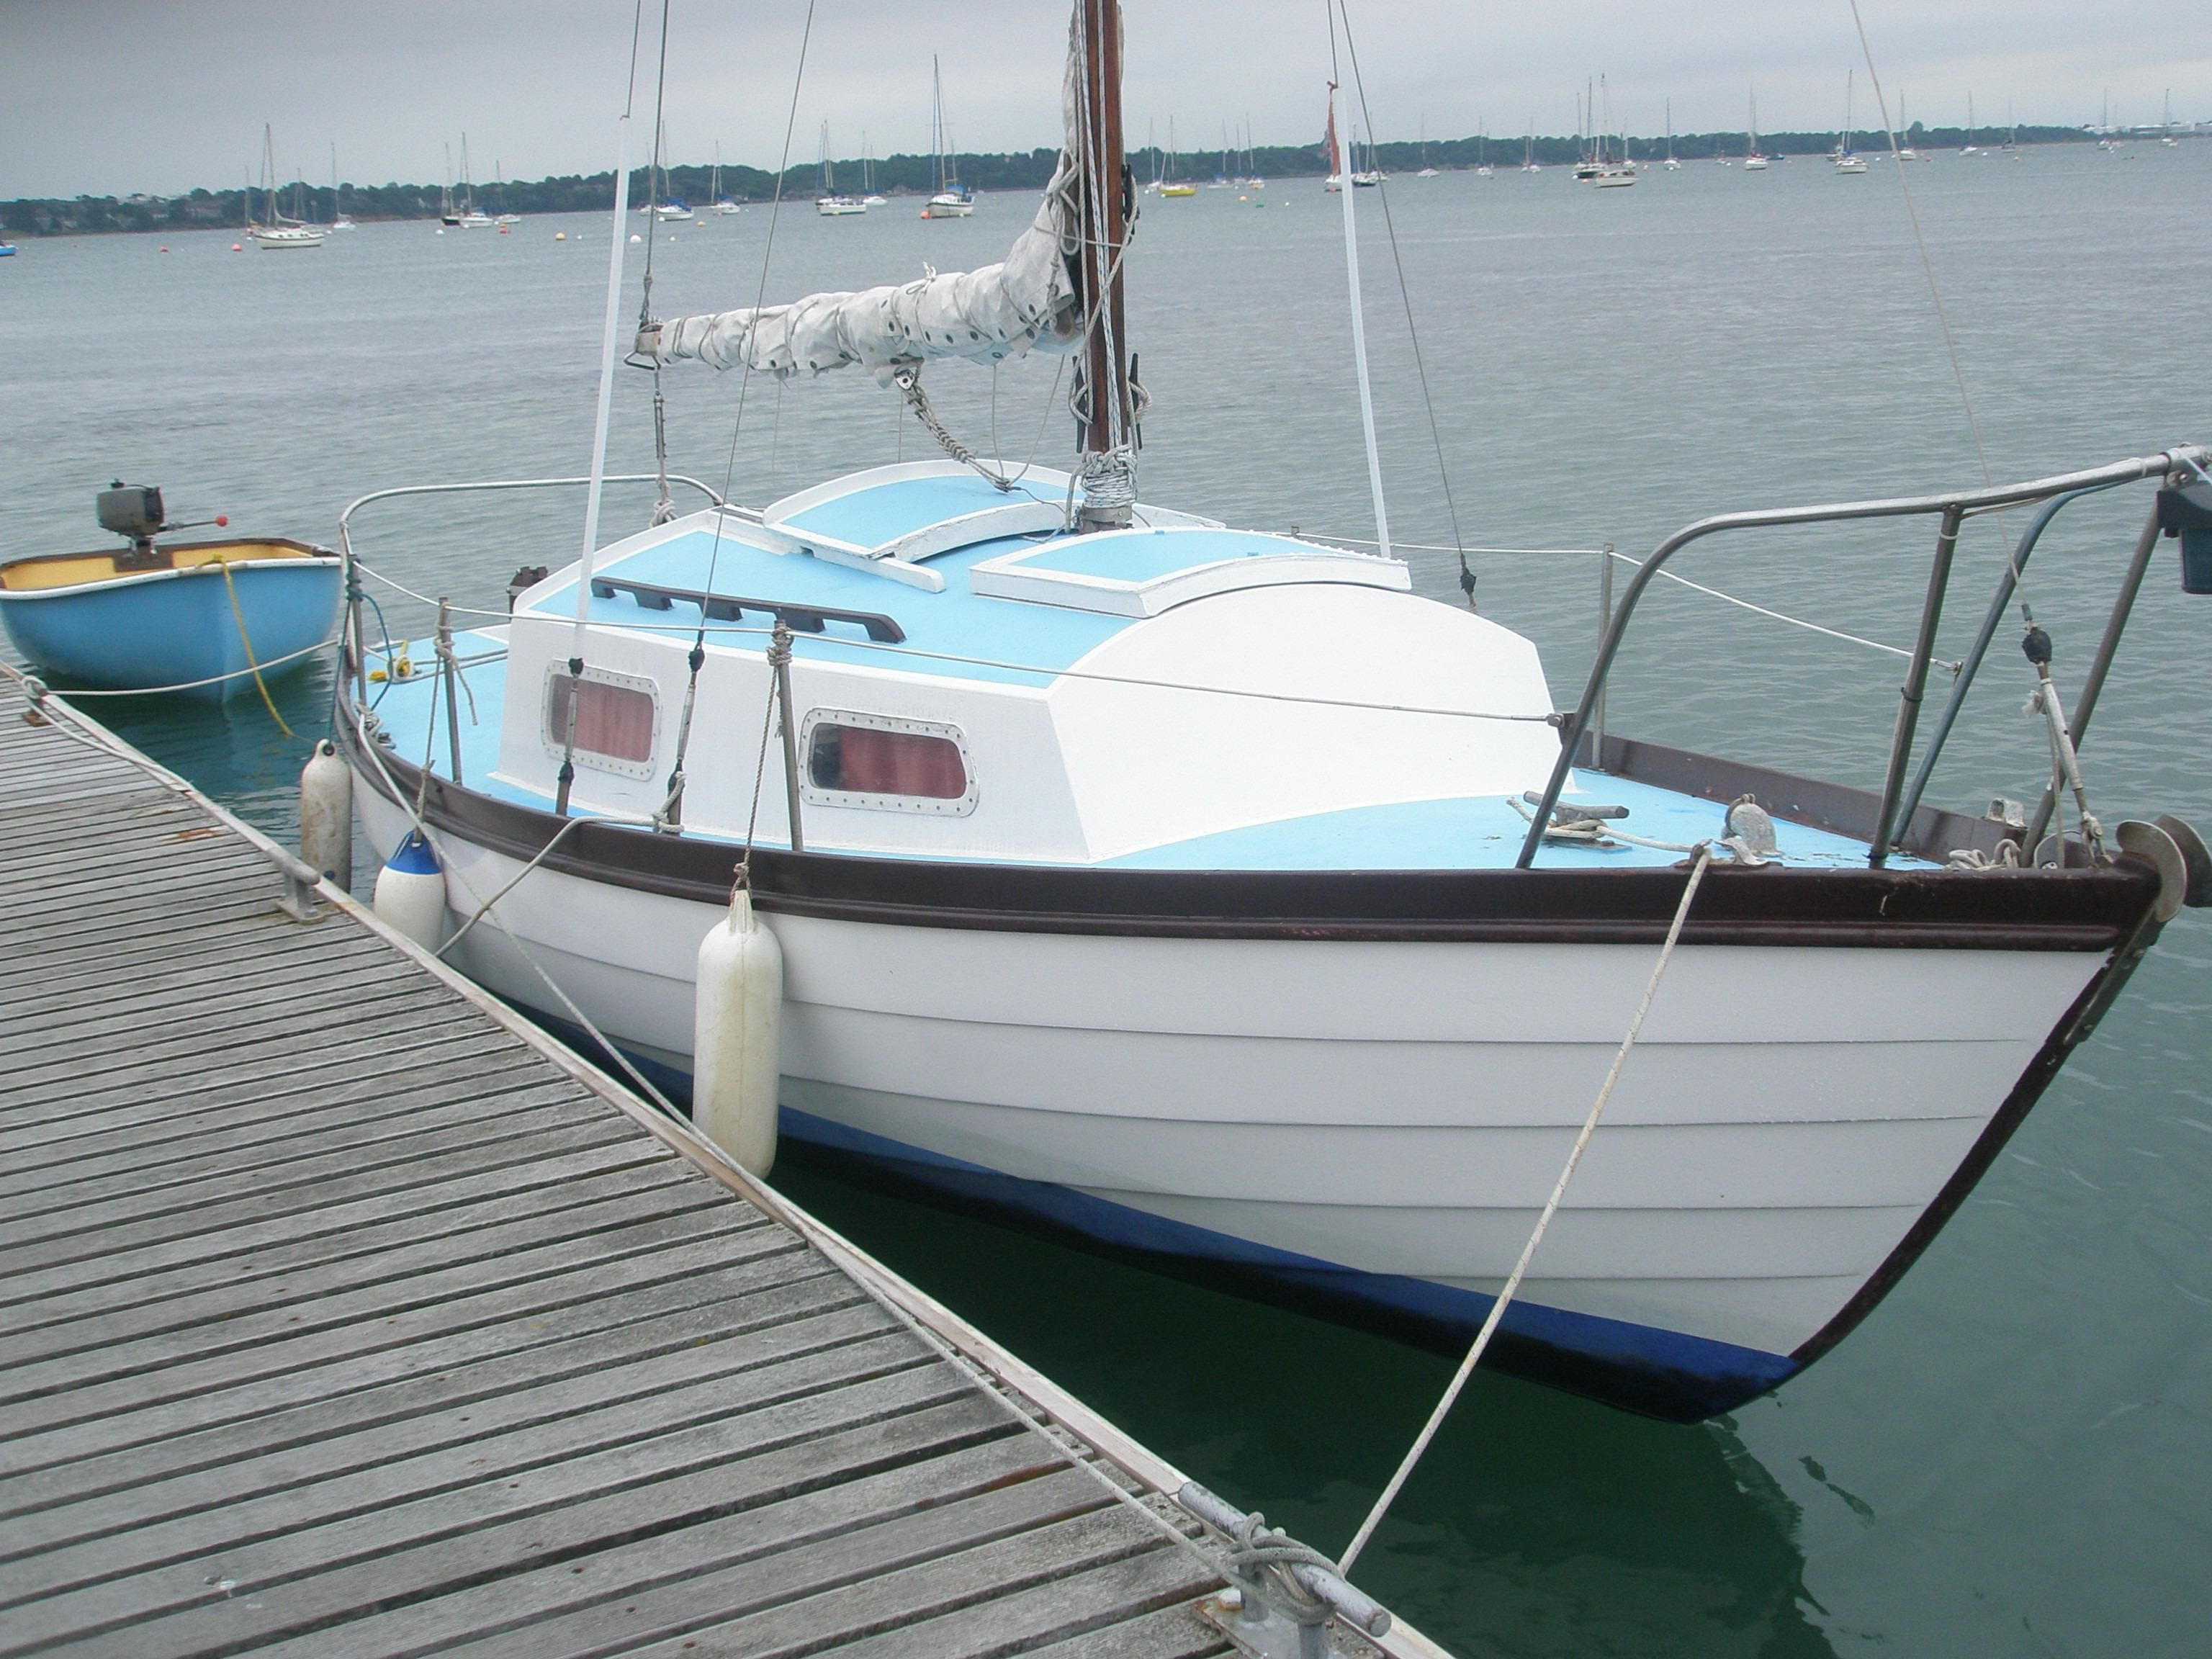 Beaulieu United Kingdom  City pictures : 1985 Waarschip 23 Sail Boat For Sale www.yachtworld.com